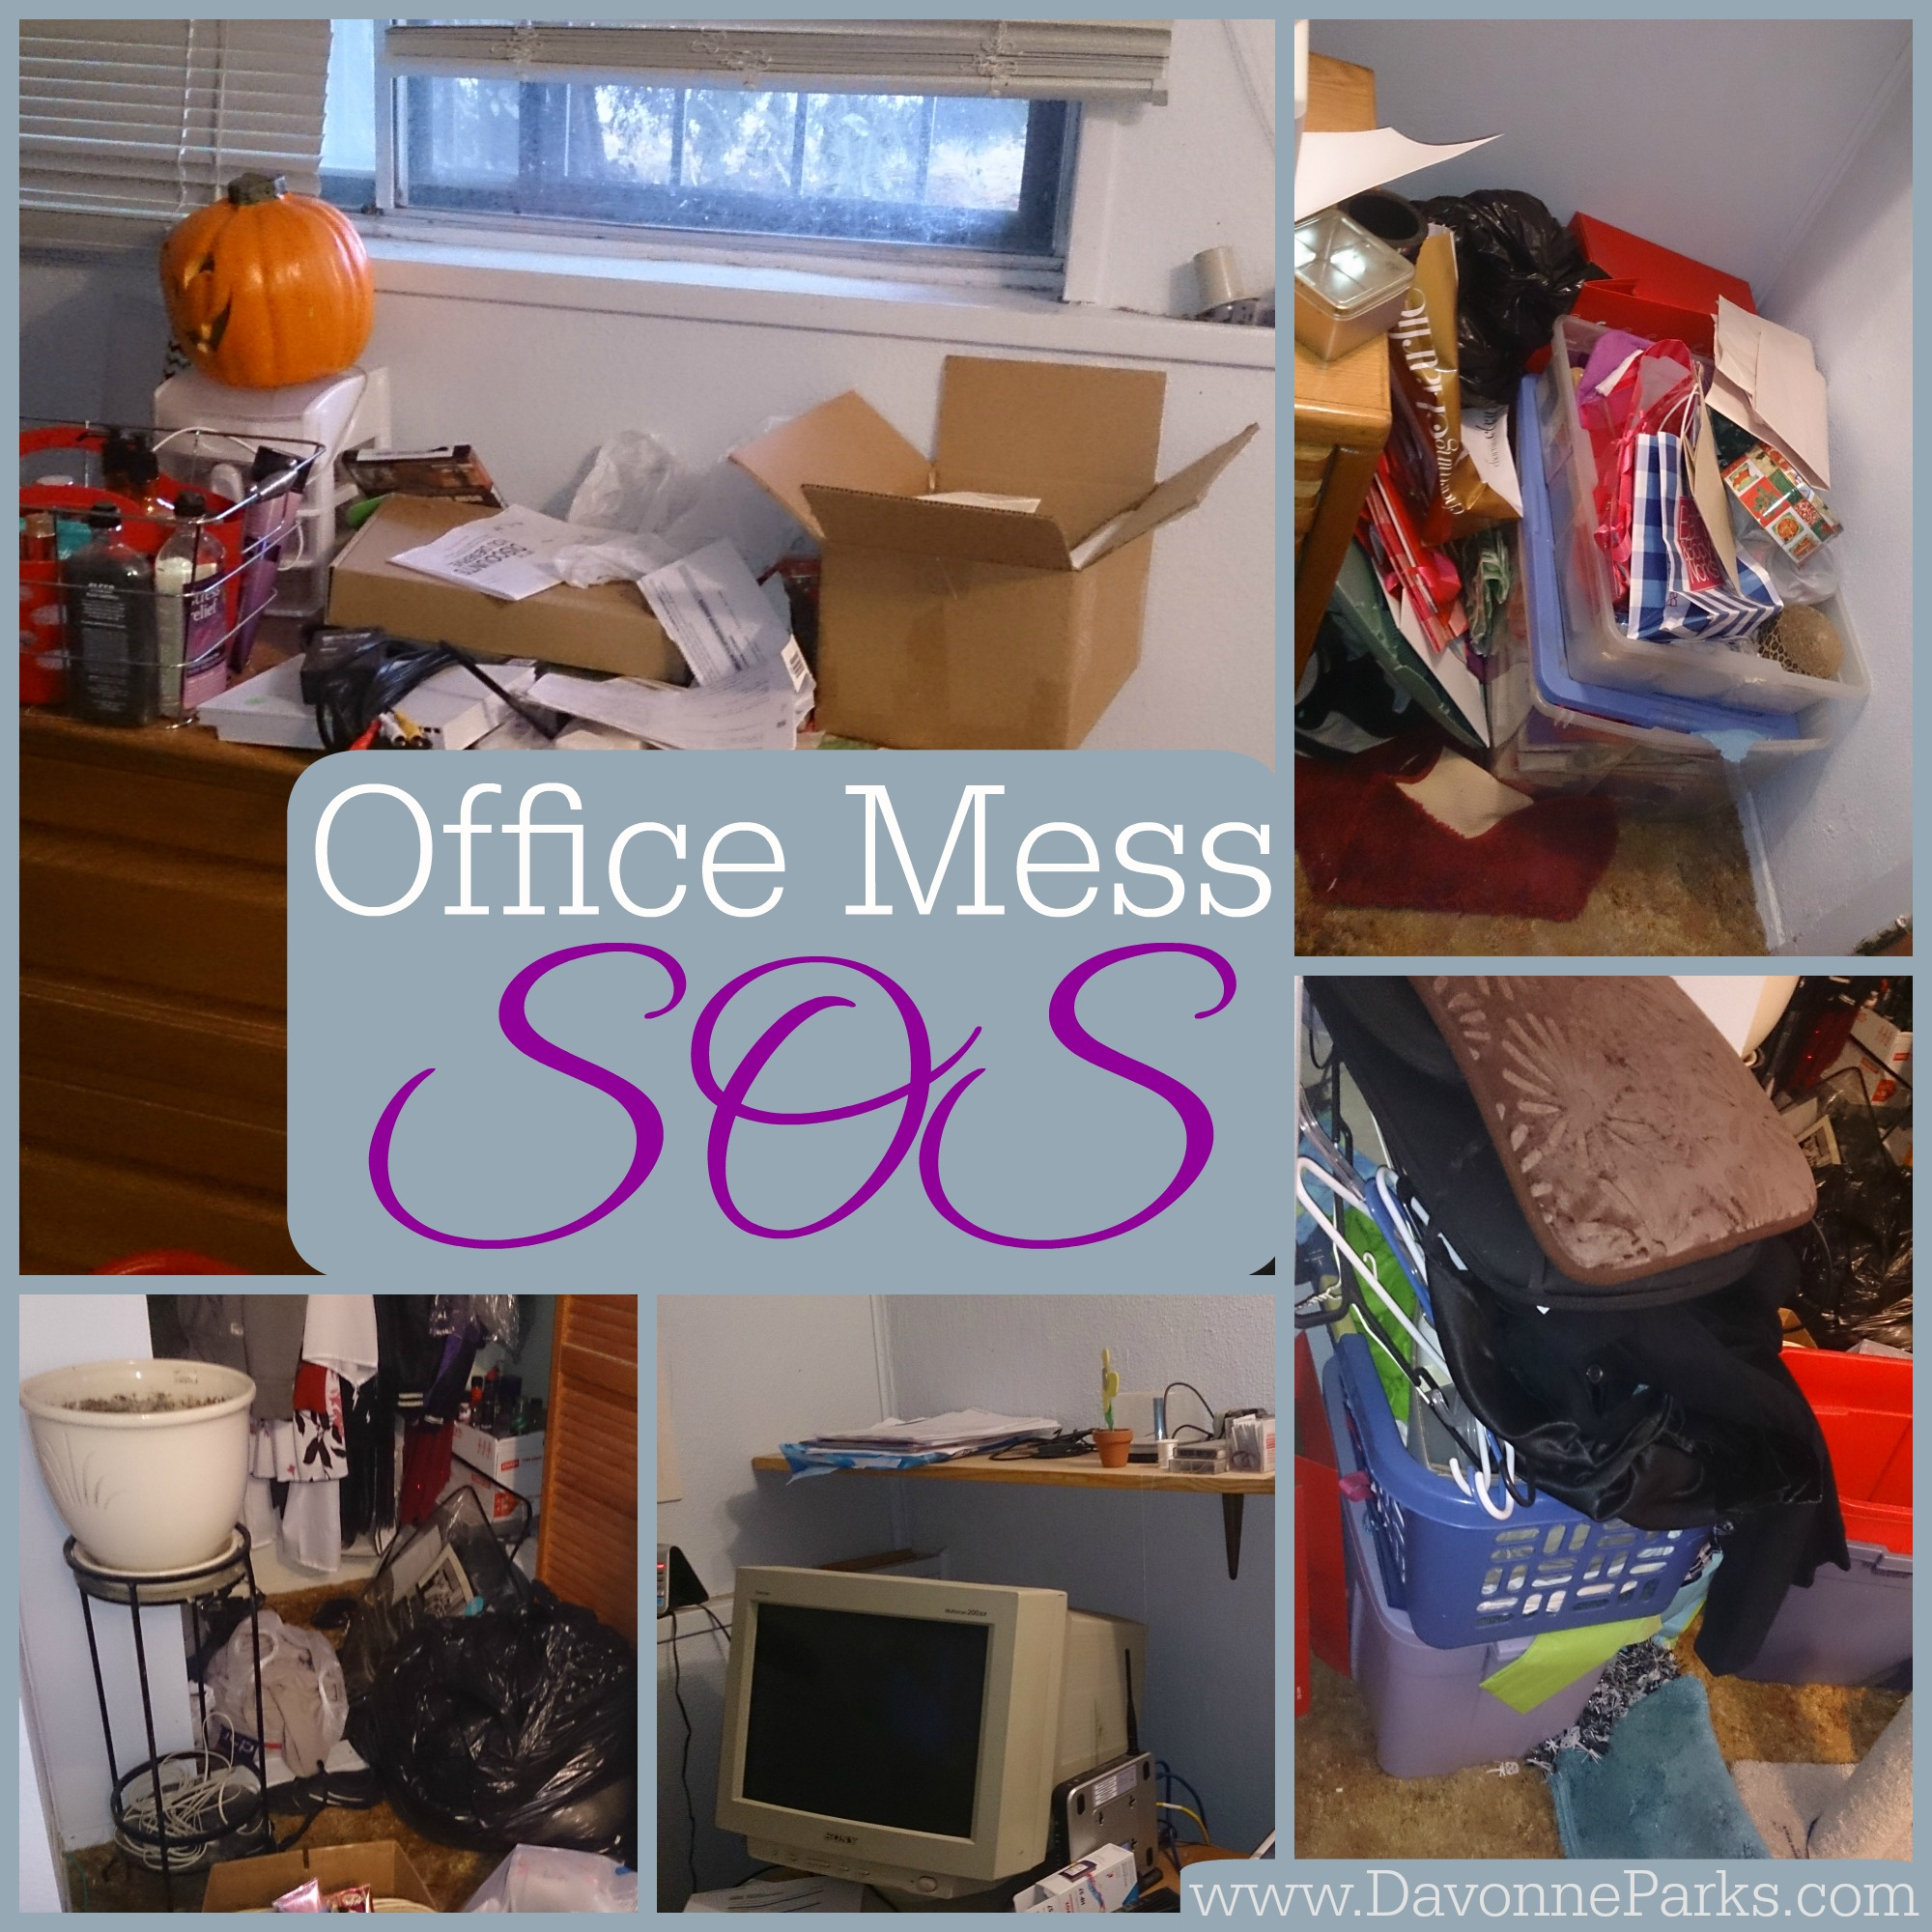 Office Mess SOS